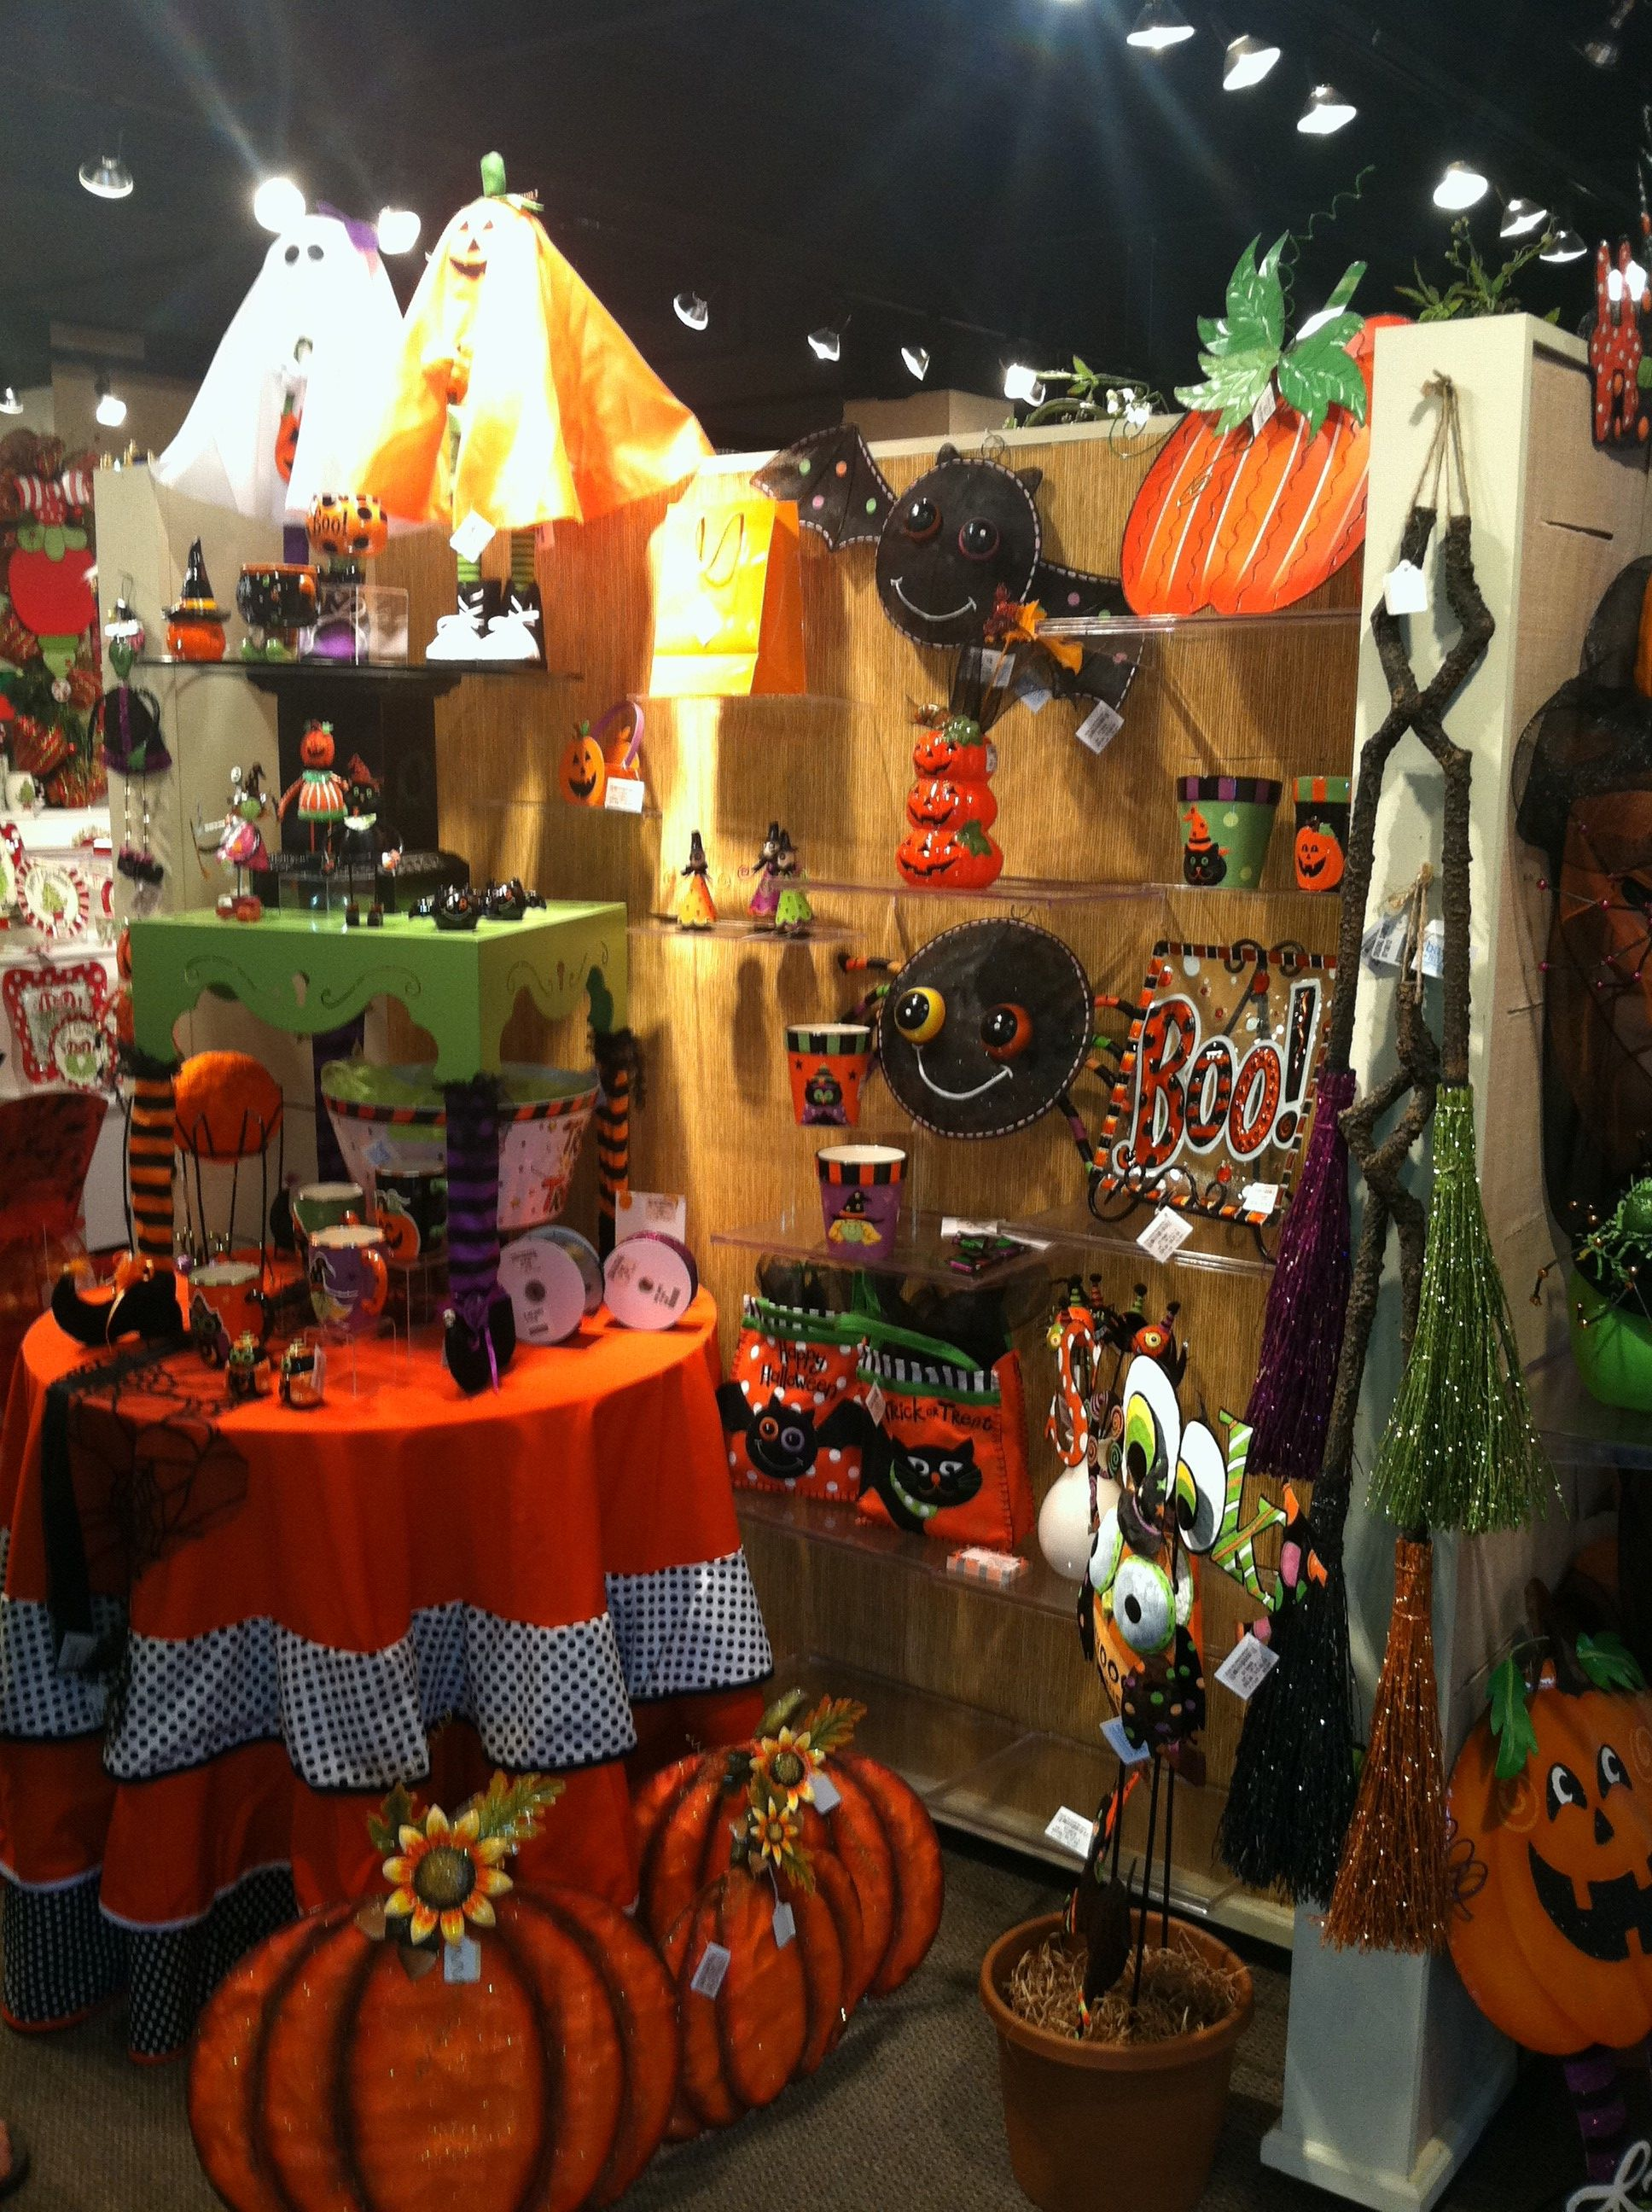 Halloween Display From Our Holiday Open House 2013 #Burtonandburton #